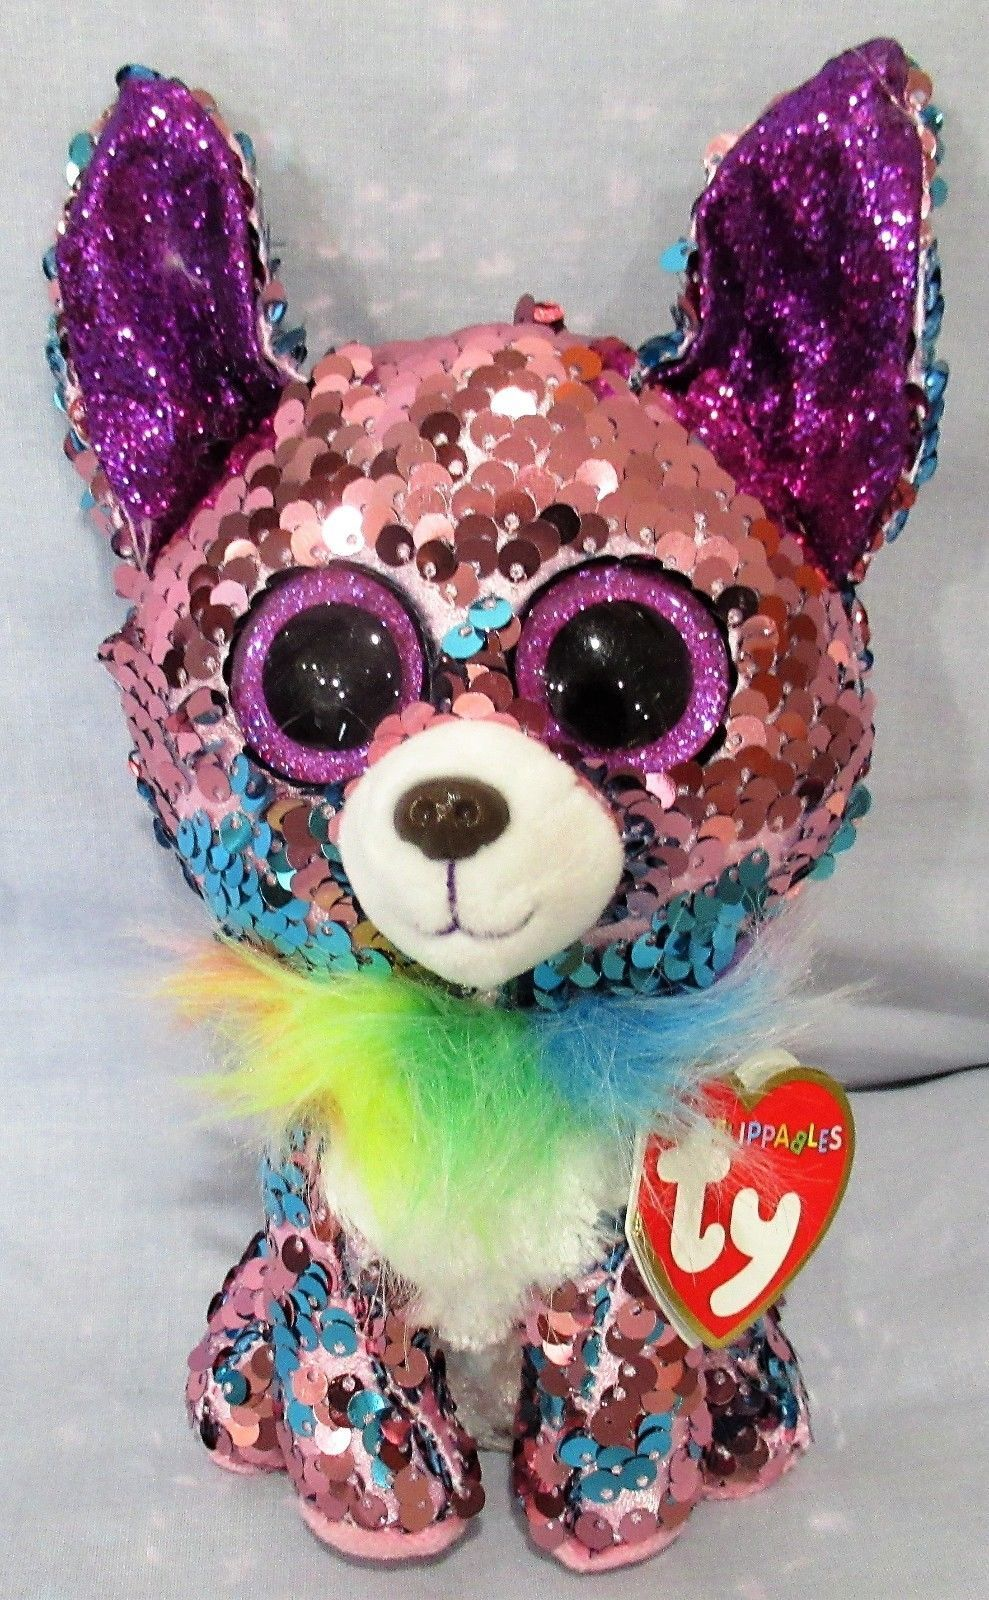 9851612be11 Current 438  Yappy - Chihuahua Dog - Ty Flippables Sequin Beanie 6 Boos -  New With Mint Tags -  BUY IT NOW ONLY   19.5 on  eBay  current  yappy   chihuahua ...